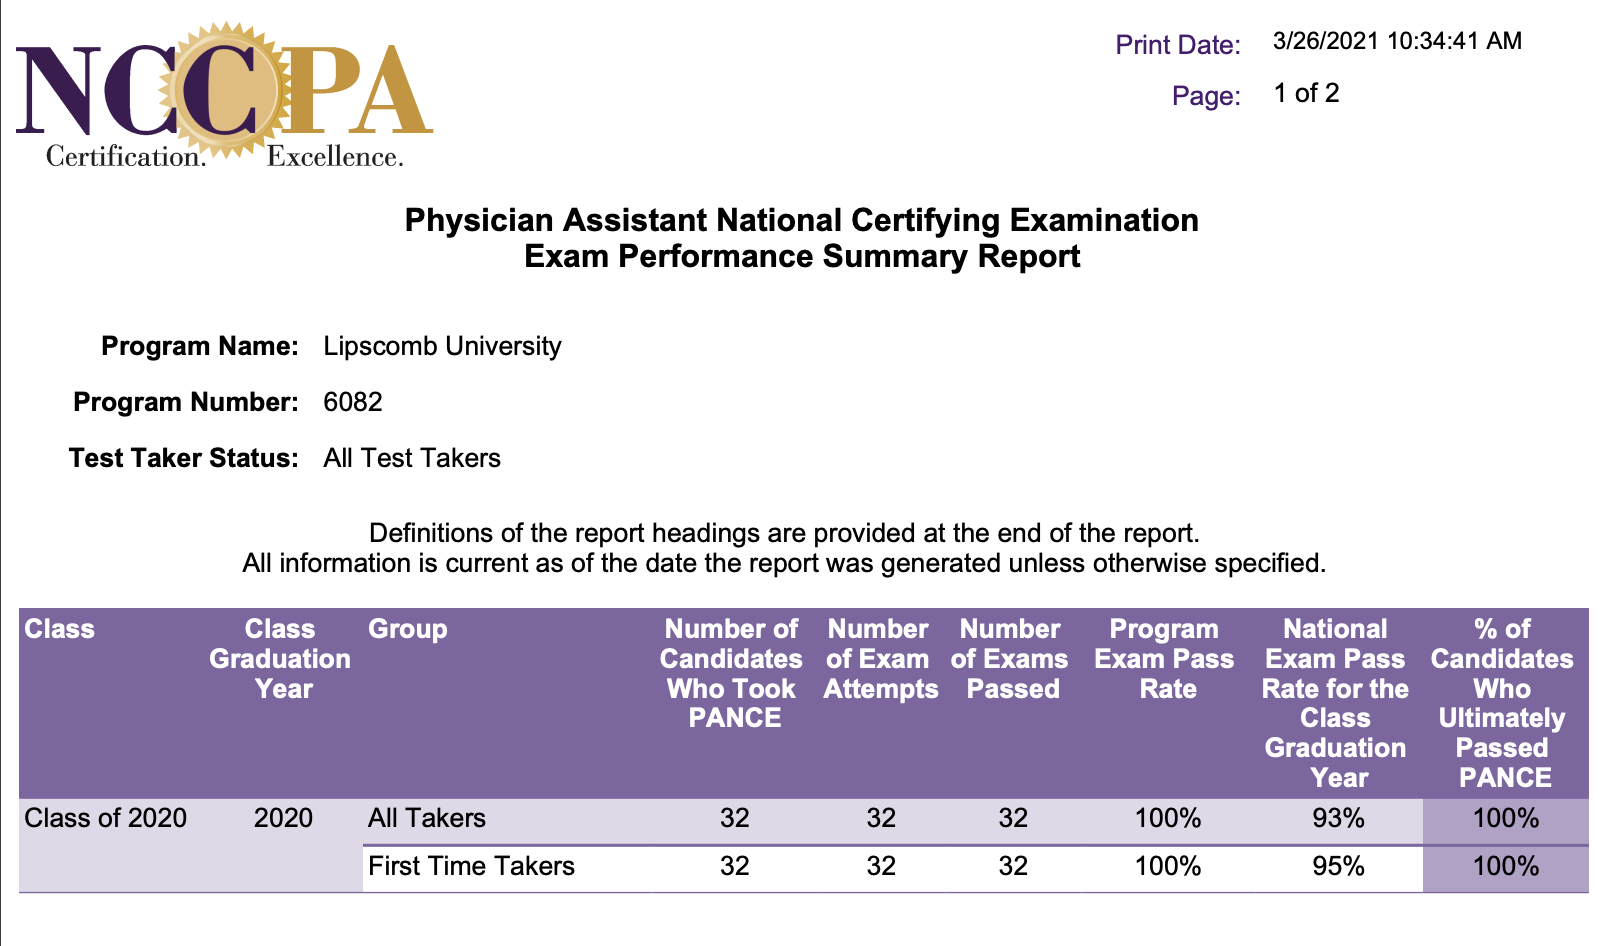 NCCPA test results